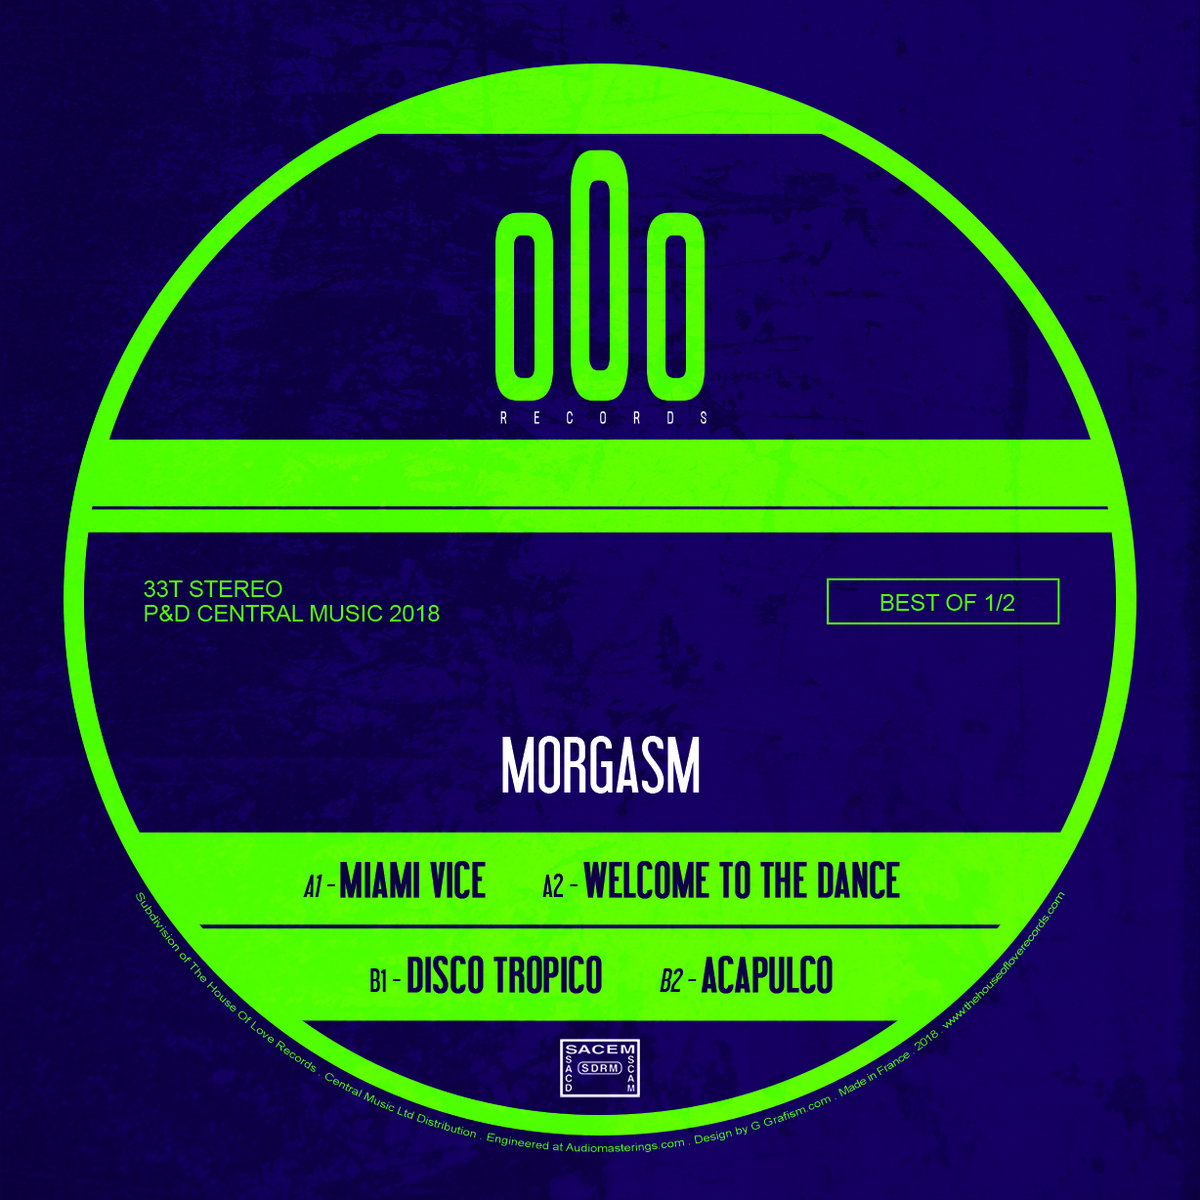 000 Records - Best Of 01 | Morgasm